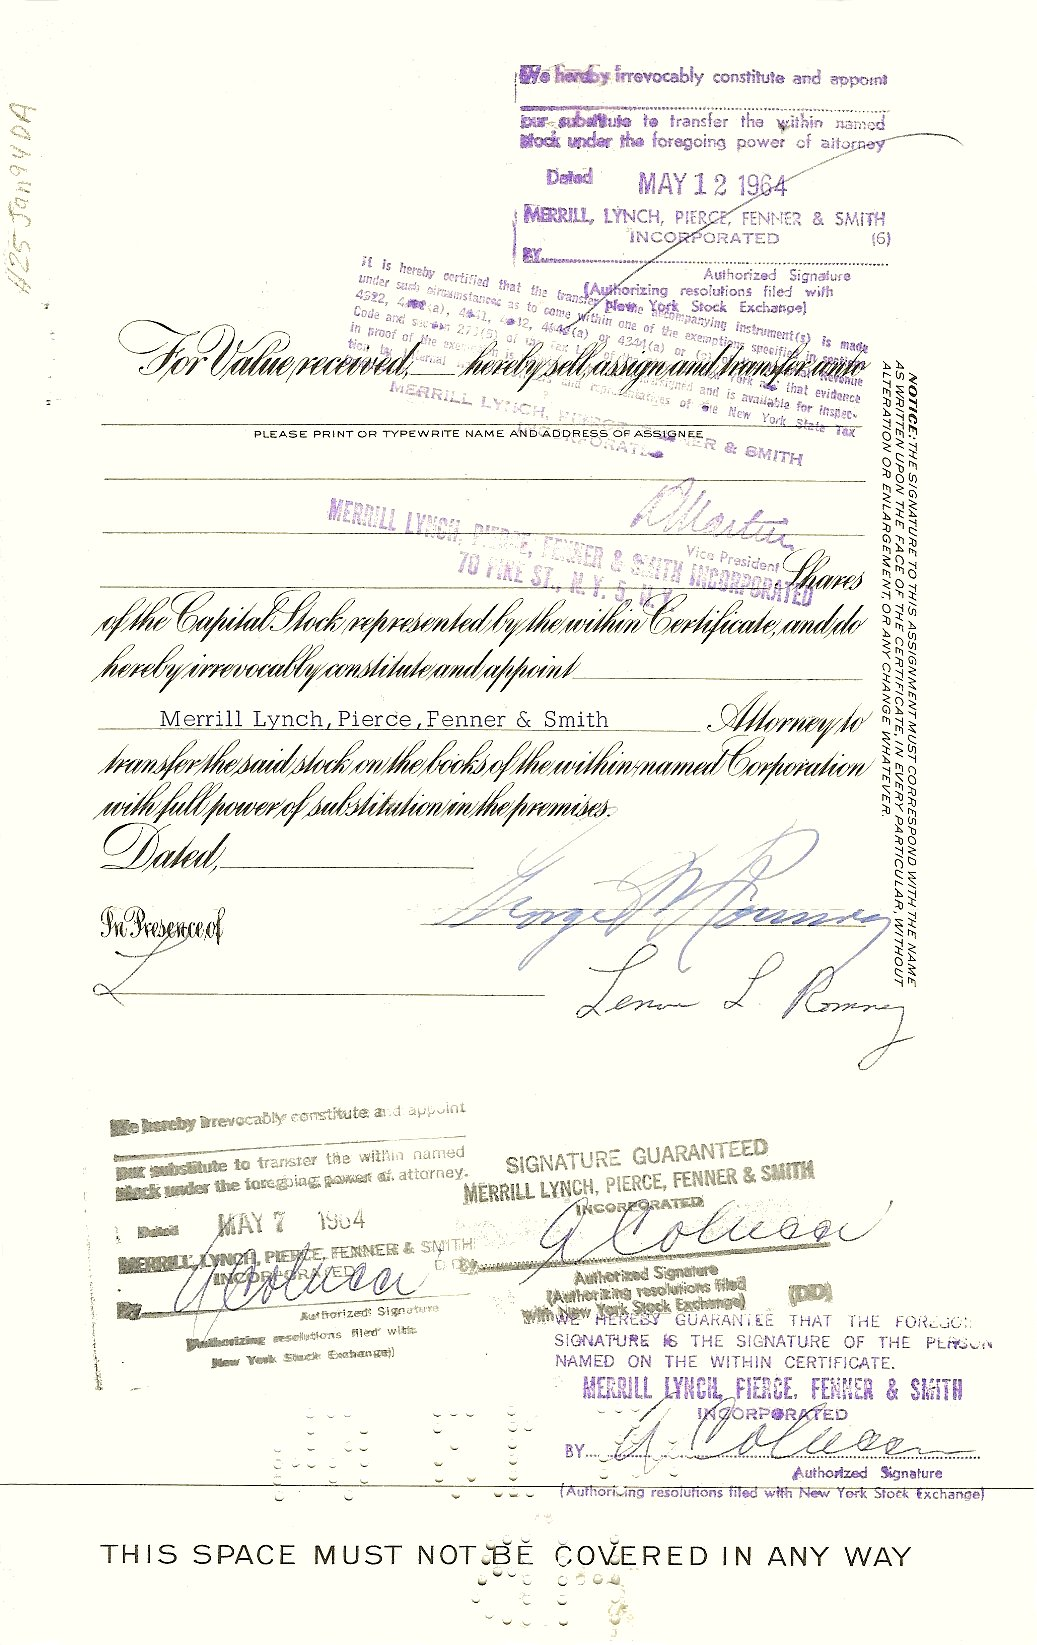 100 Shares of Nash-Kelvinator Corporation Once owned by and signed by: George W Romney and Mrs Lenore L Romney Dated May 12, 1964 11″x7″ Back